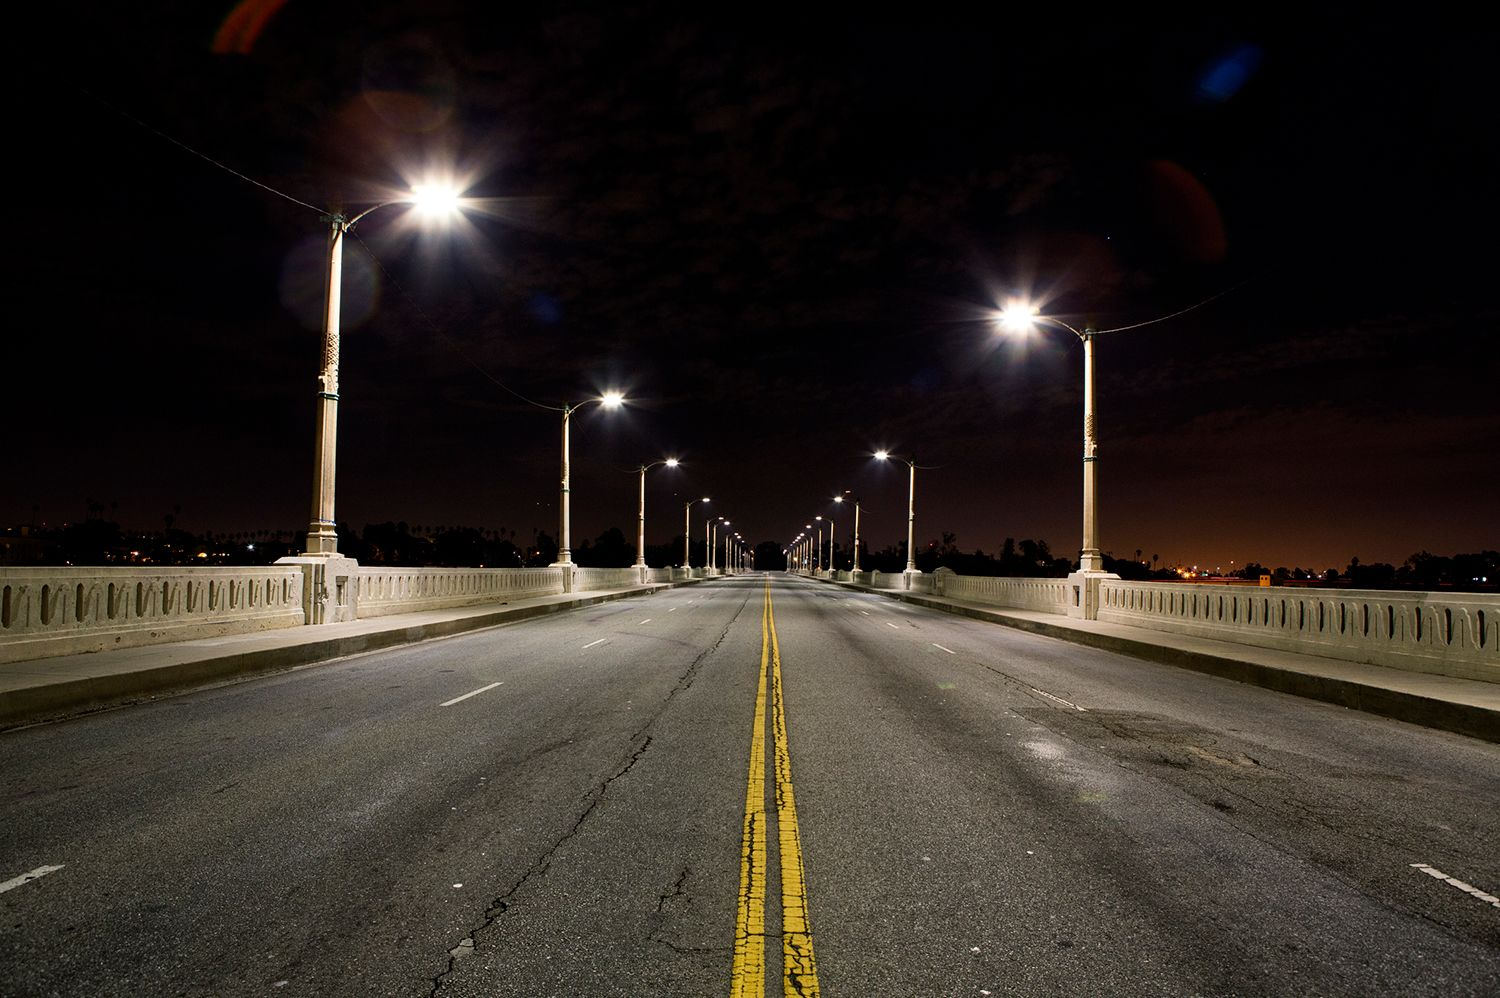 Led Lights Bad Health Bright Street Lights Can Be Bad For Your Health Doctors Say